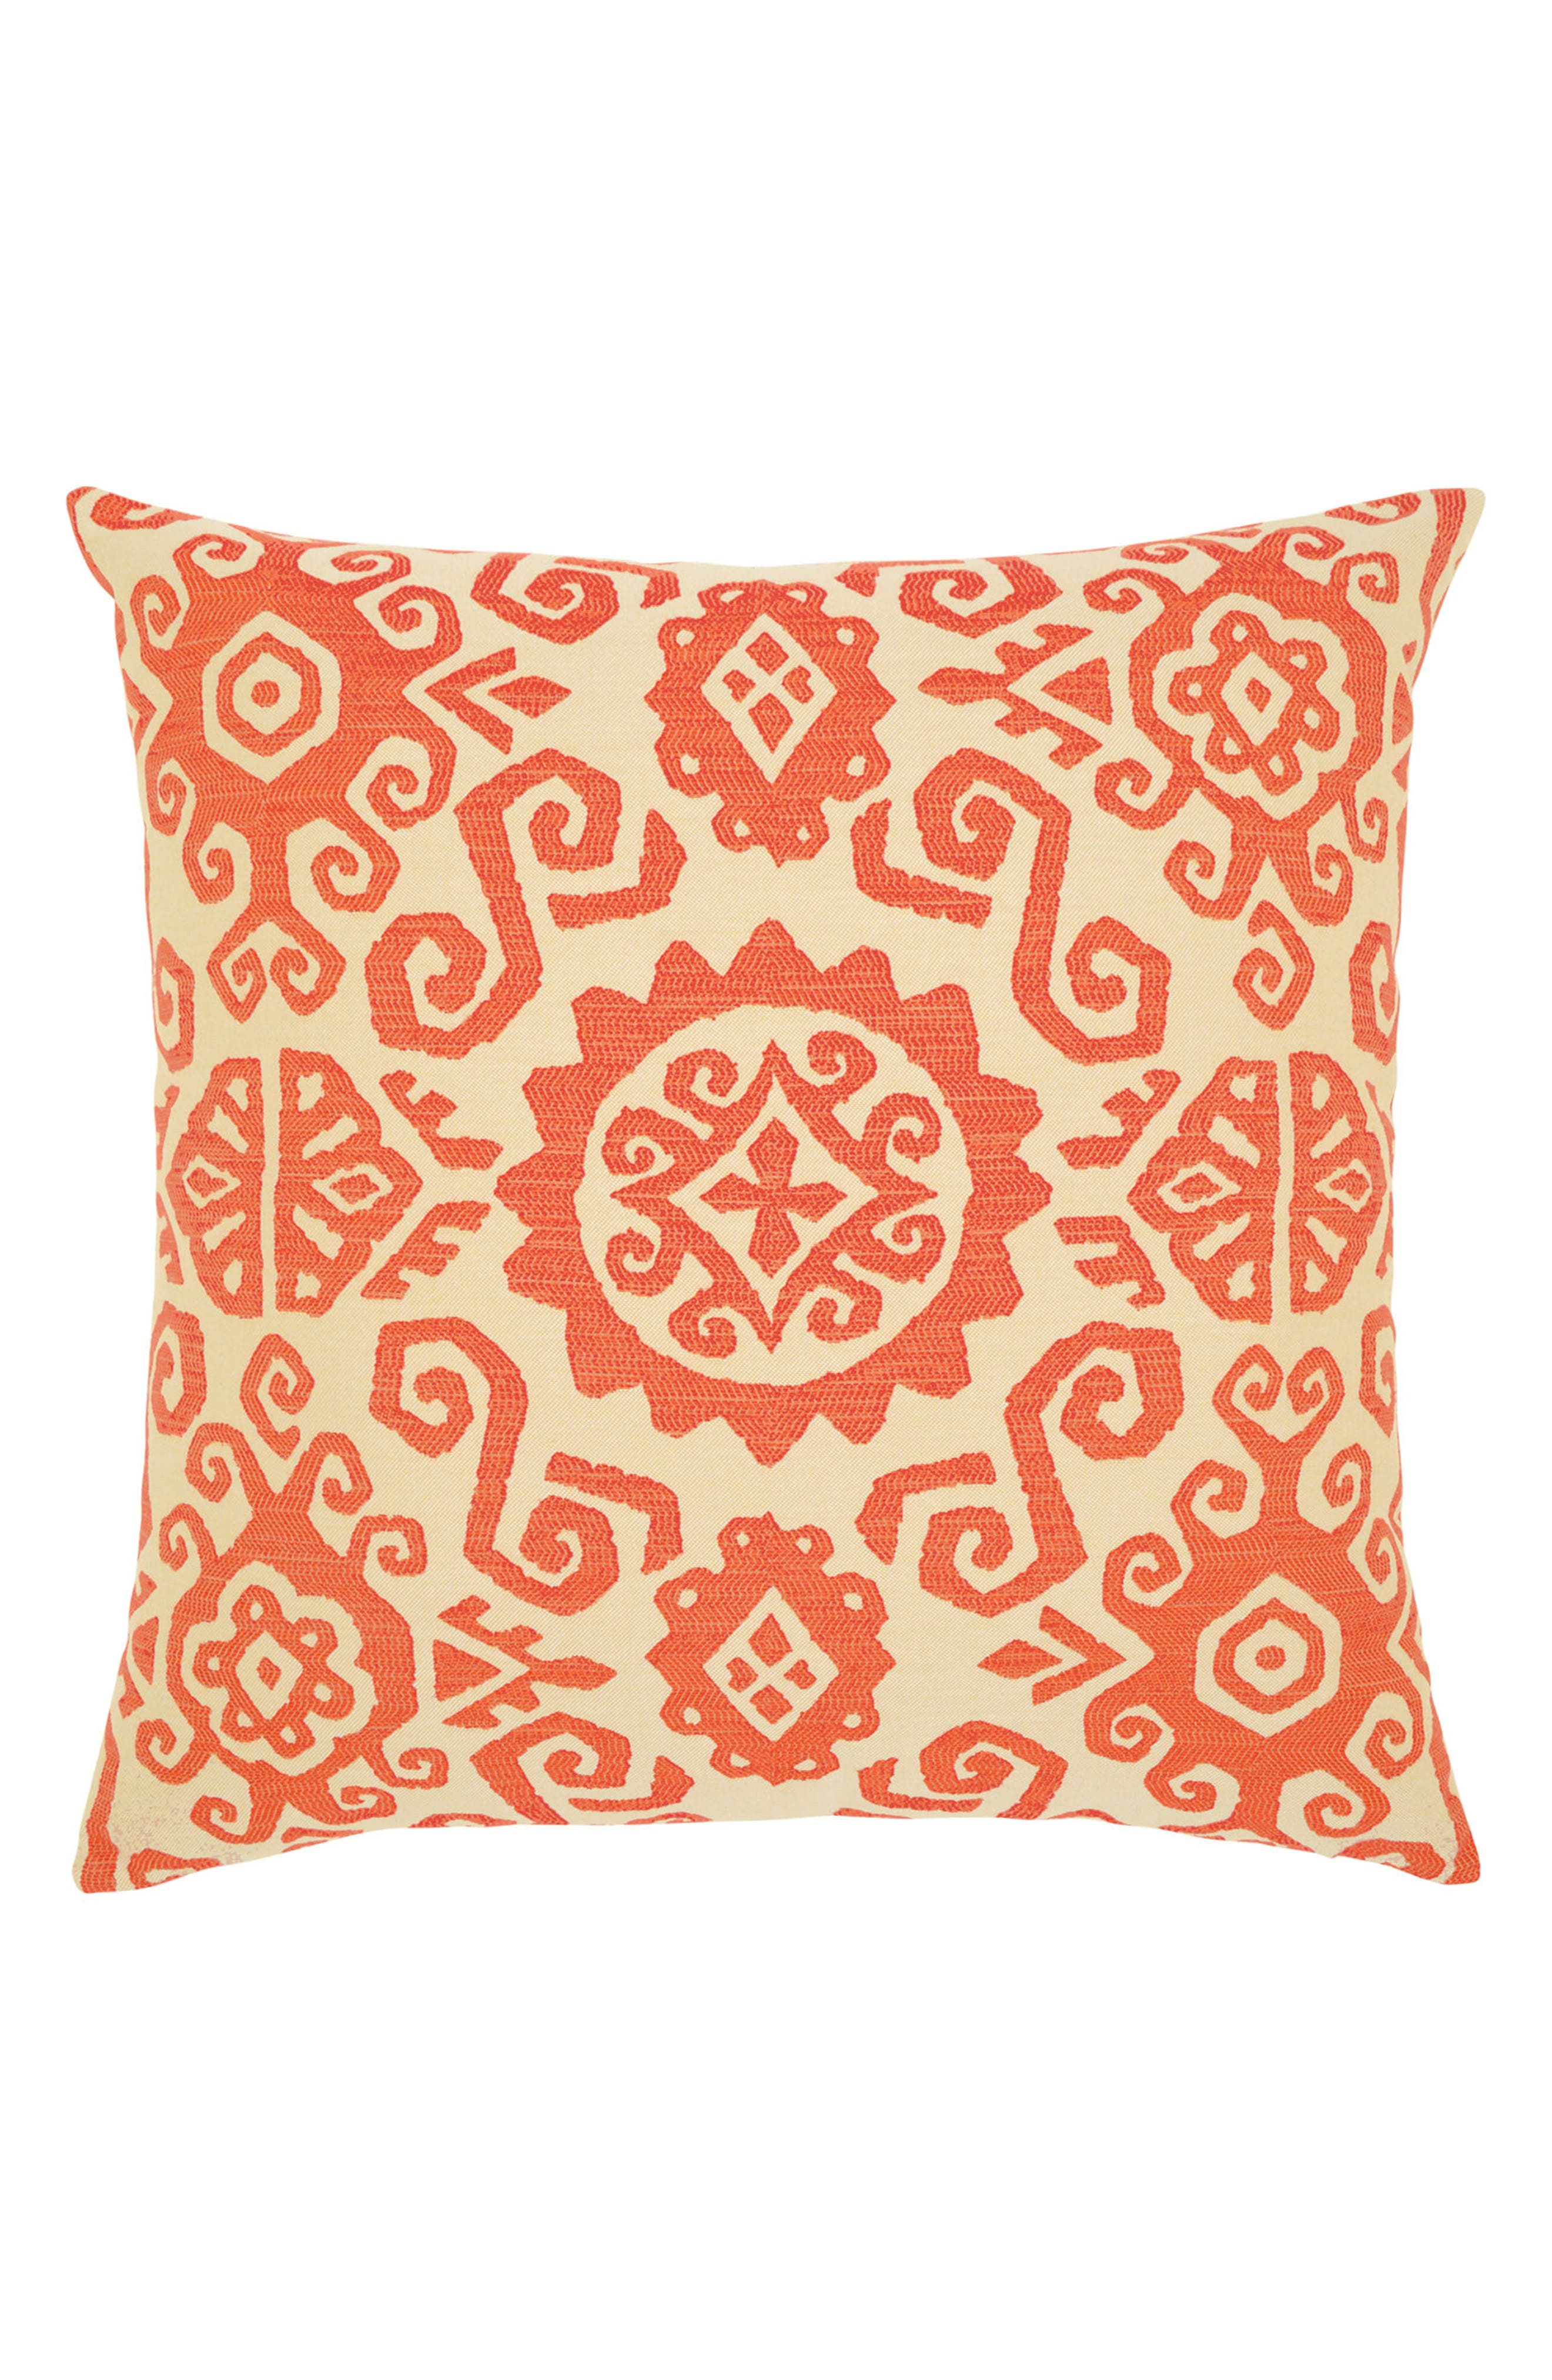 Alternate Image 1 Selected - Elaine Smith Coral Sun Indoor/Outdoor Accent Pillow